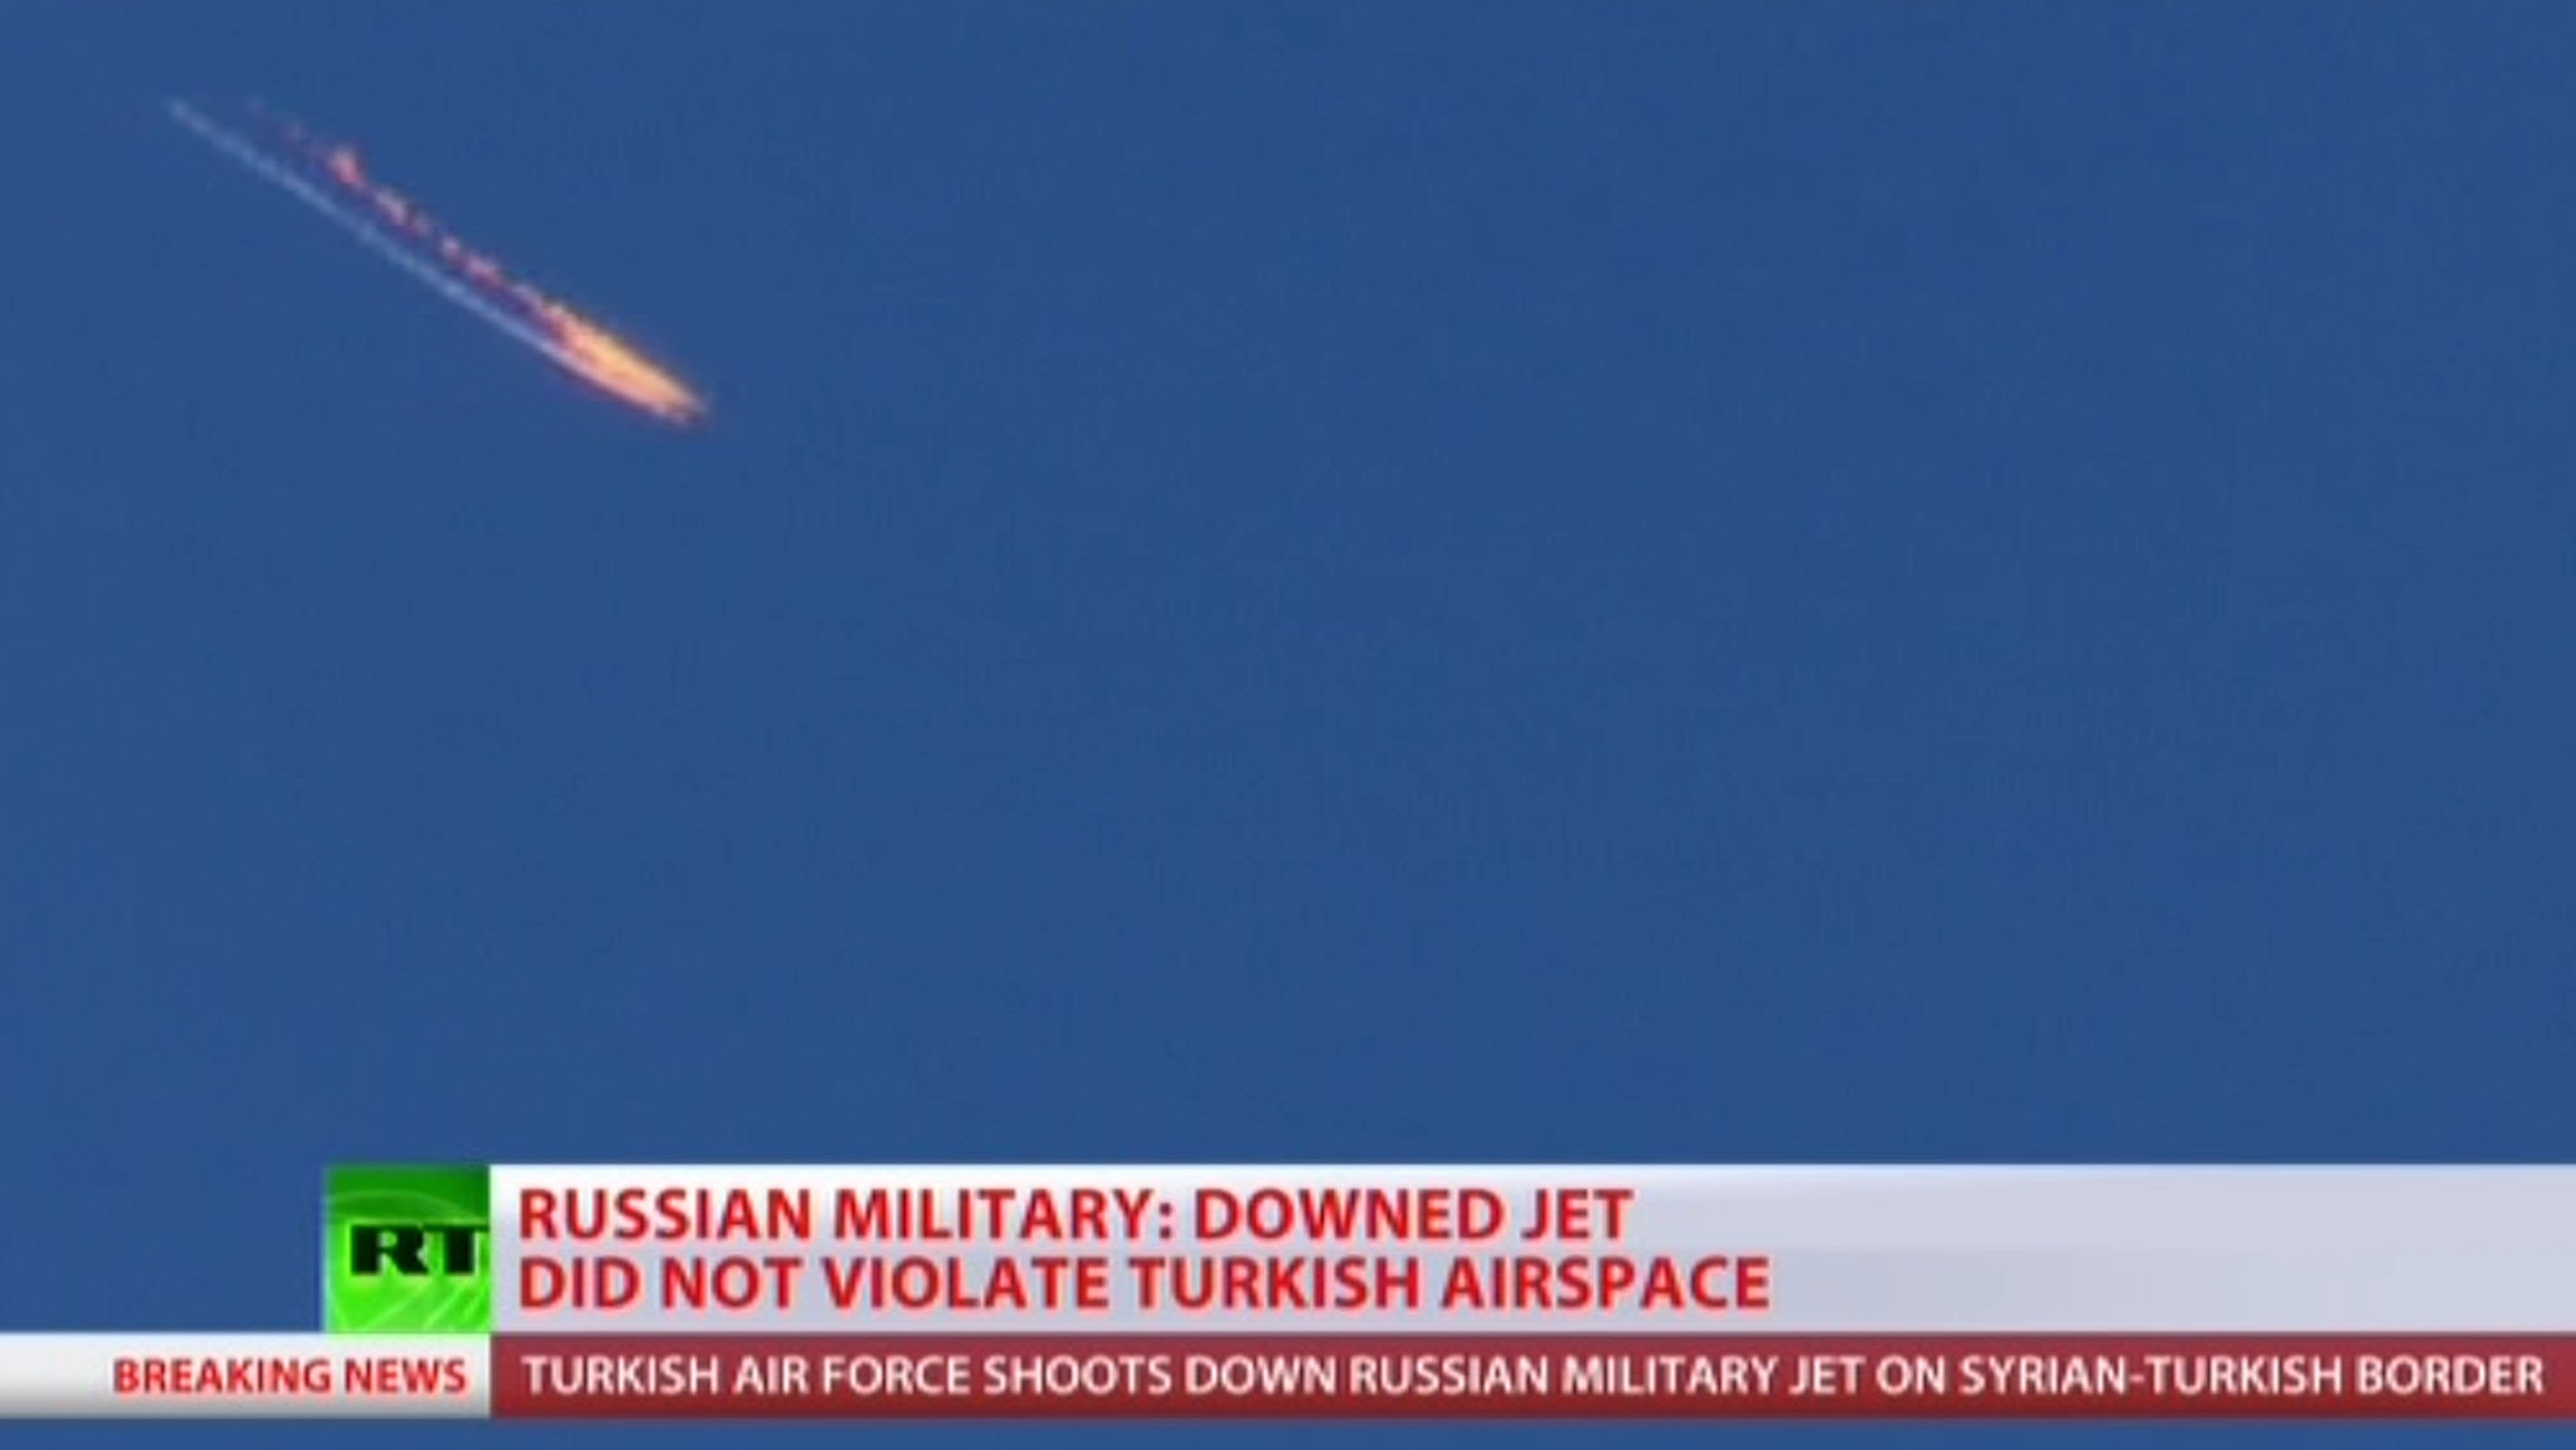 Local TV images after Turkish military shot down a Russian military aircraft on the border with Syria.